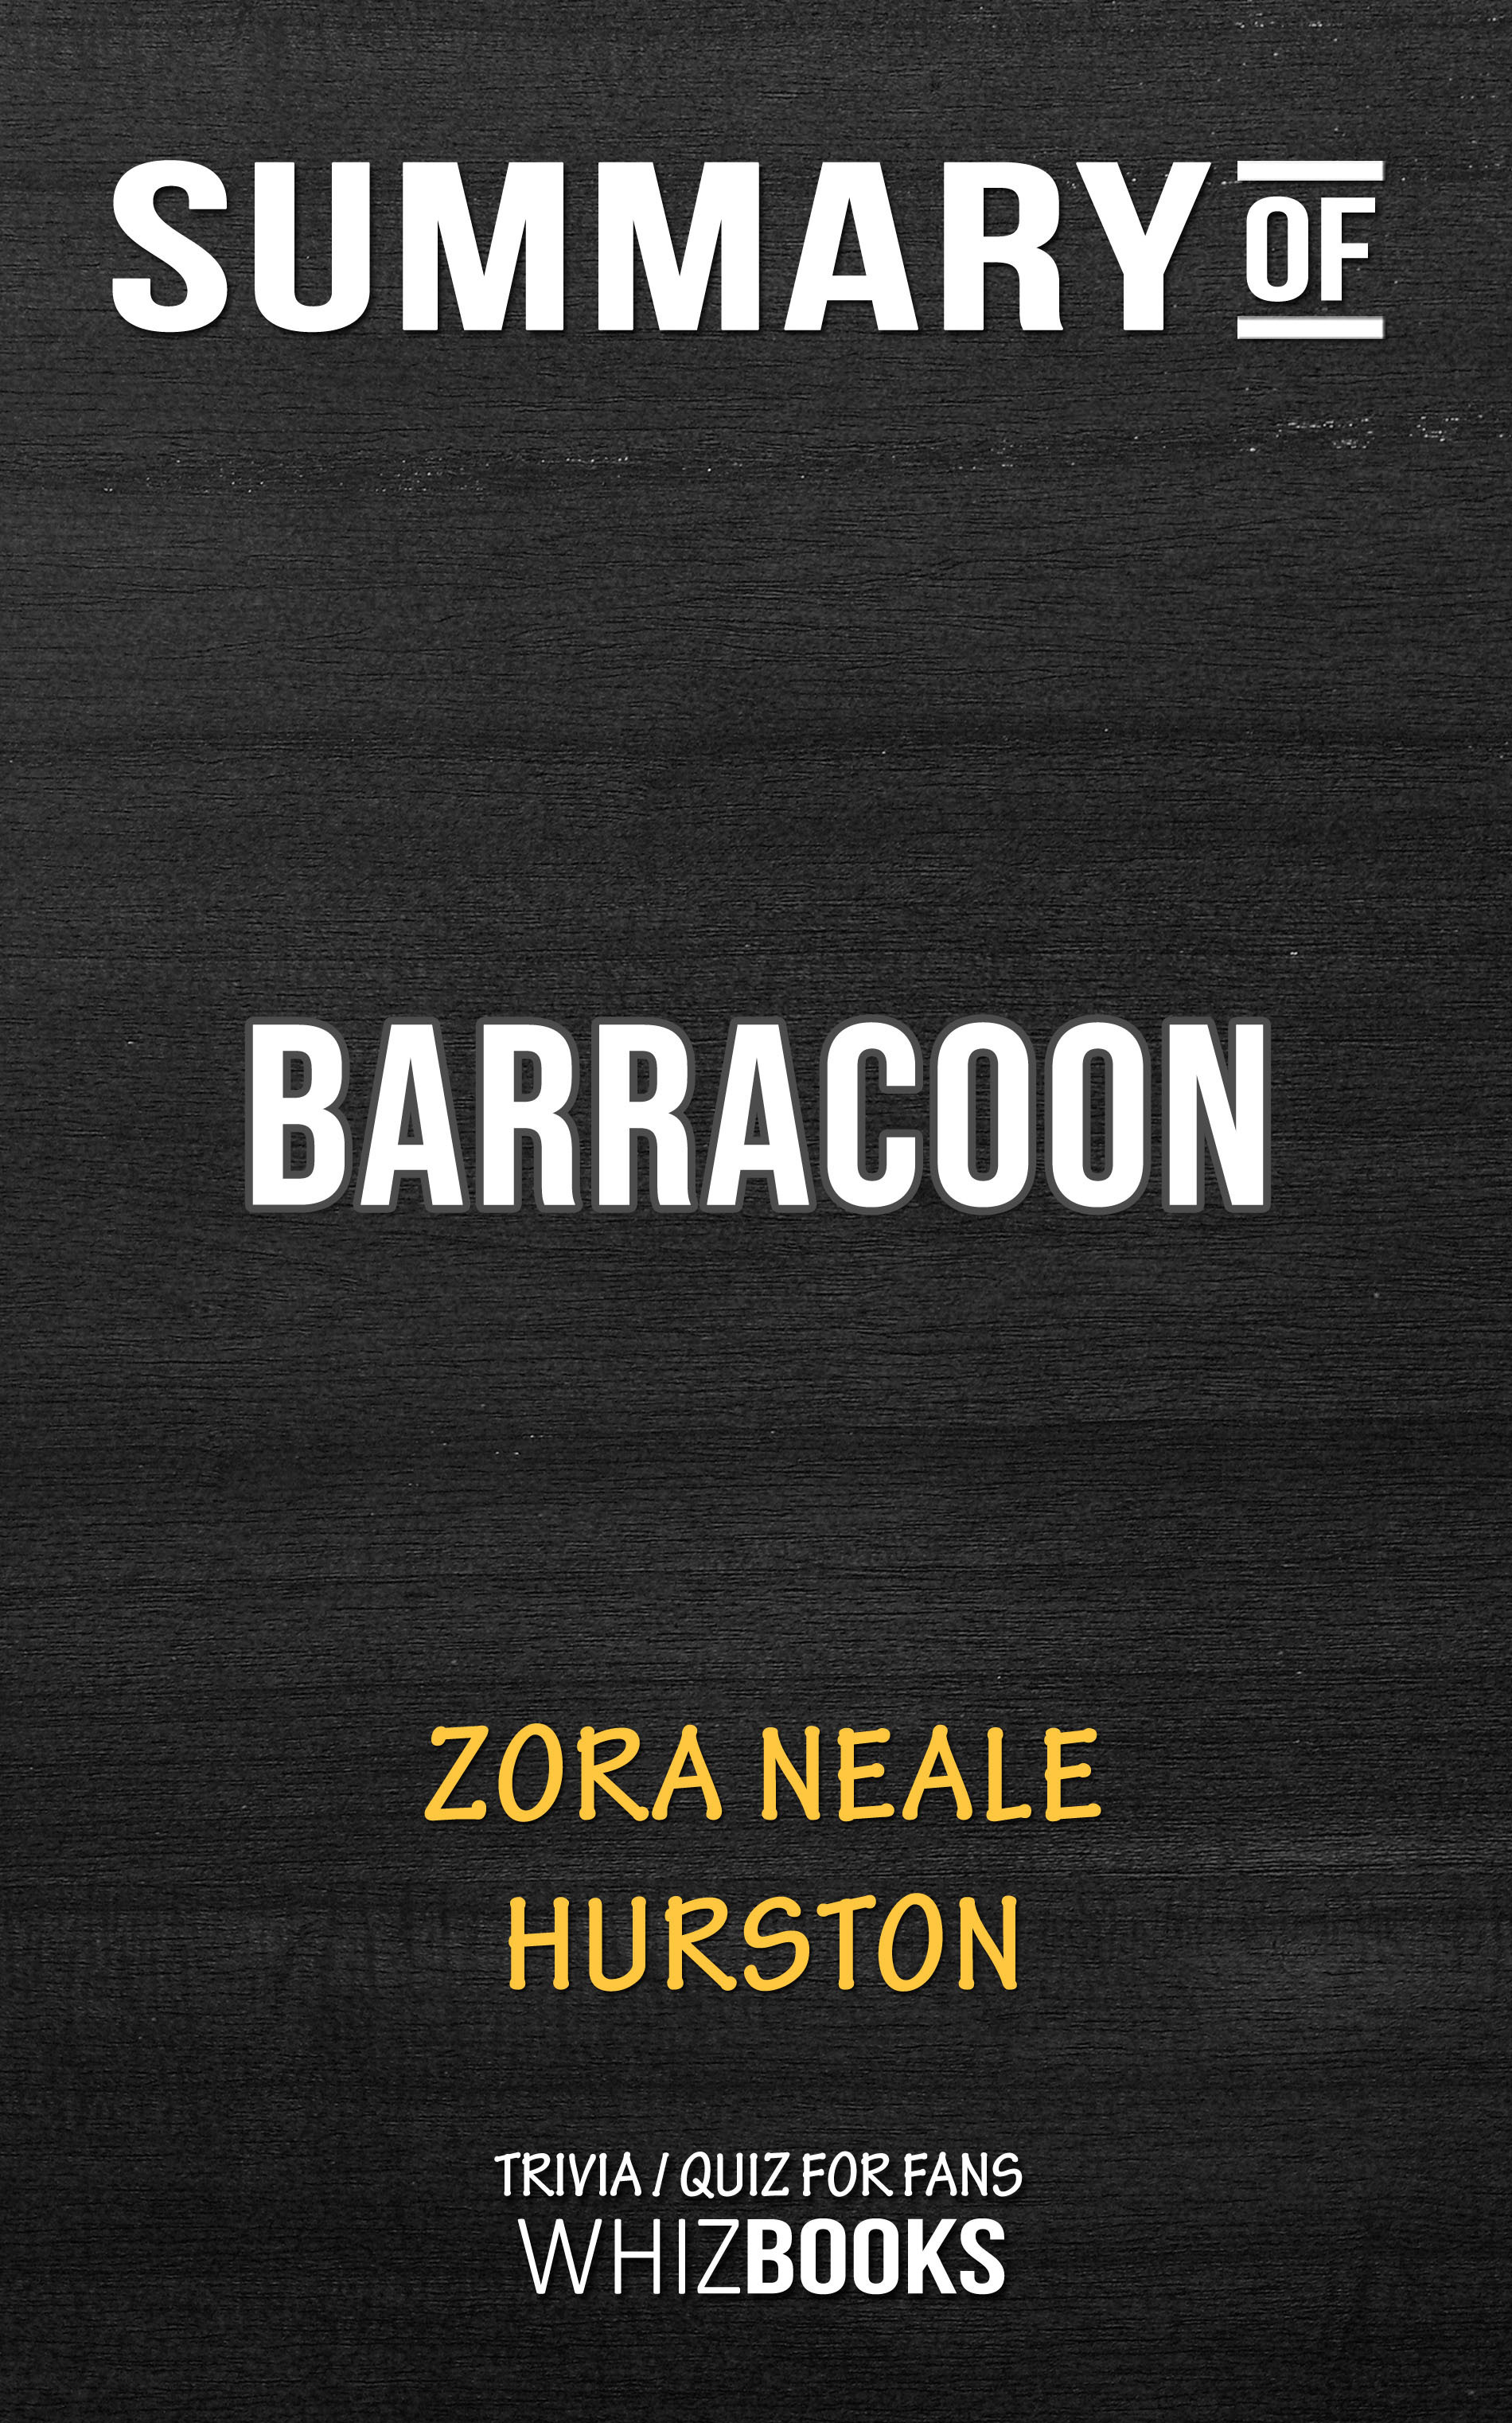 """Summary of Barracoon: The Story of the Last """"Black Cargo by Zora Neale Hurston"""